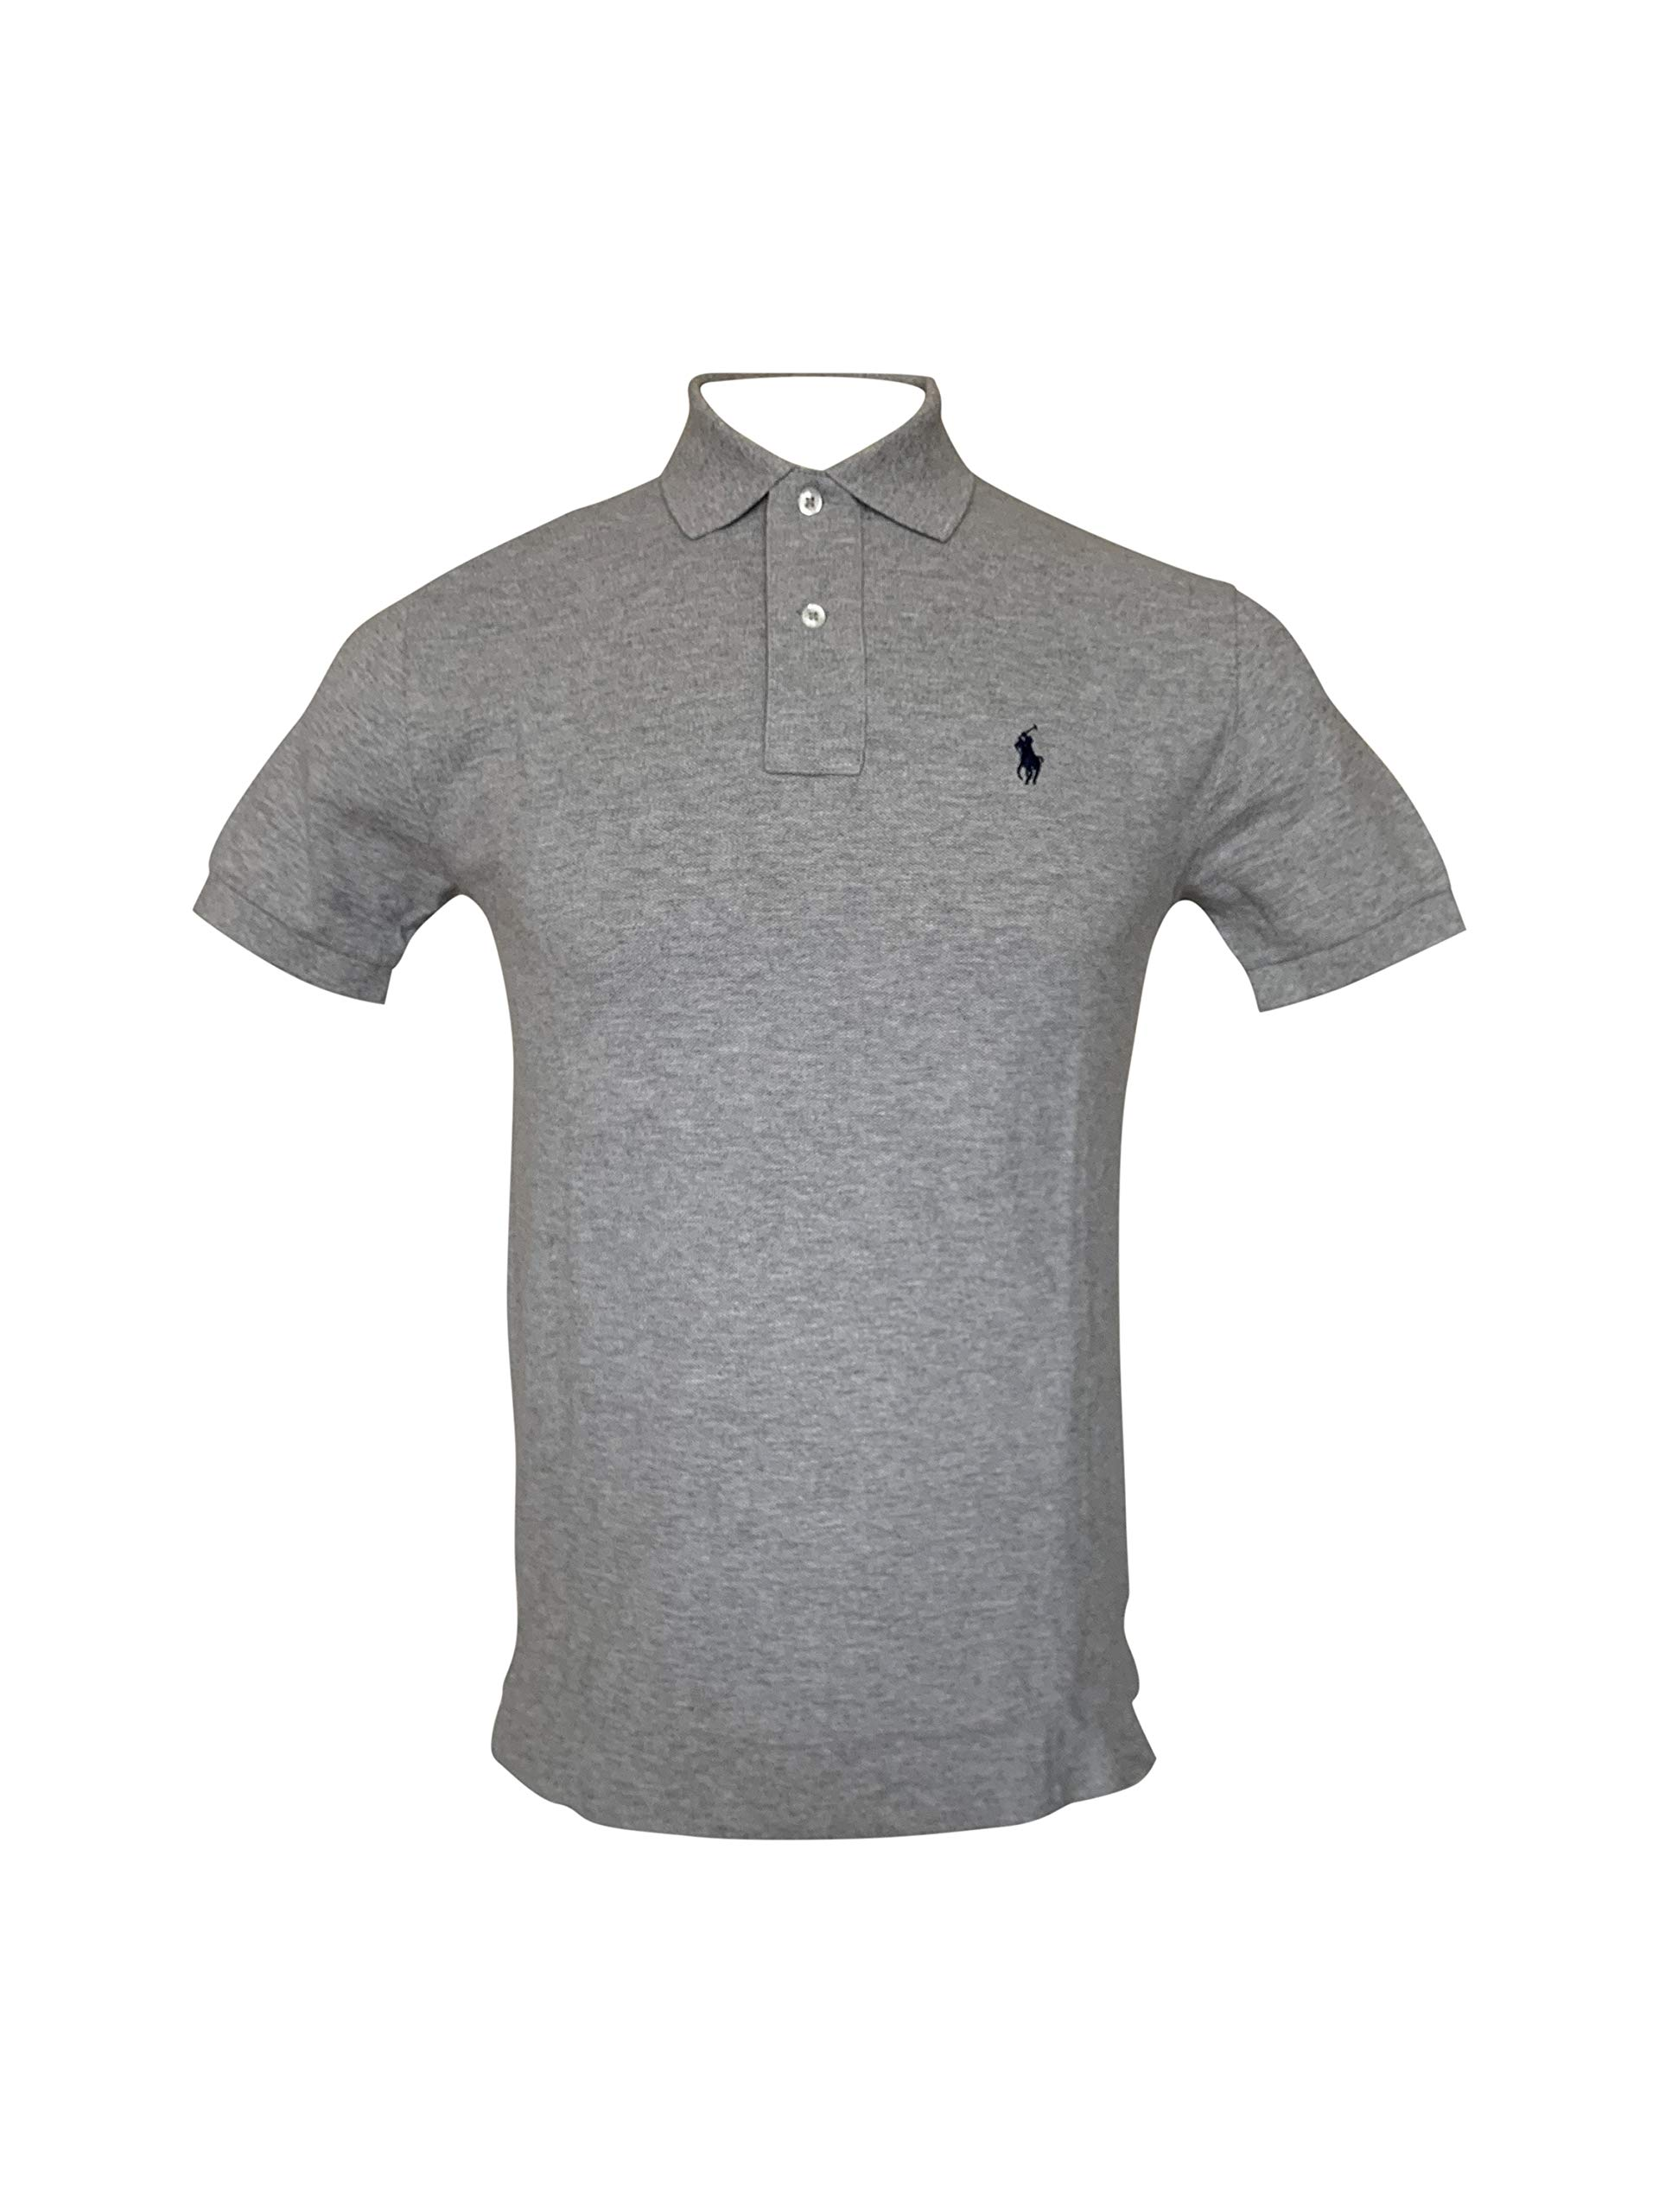 Polo Ralph Lauren- Classic Fit Mesh Polo (X-Small, Andover Heather)